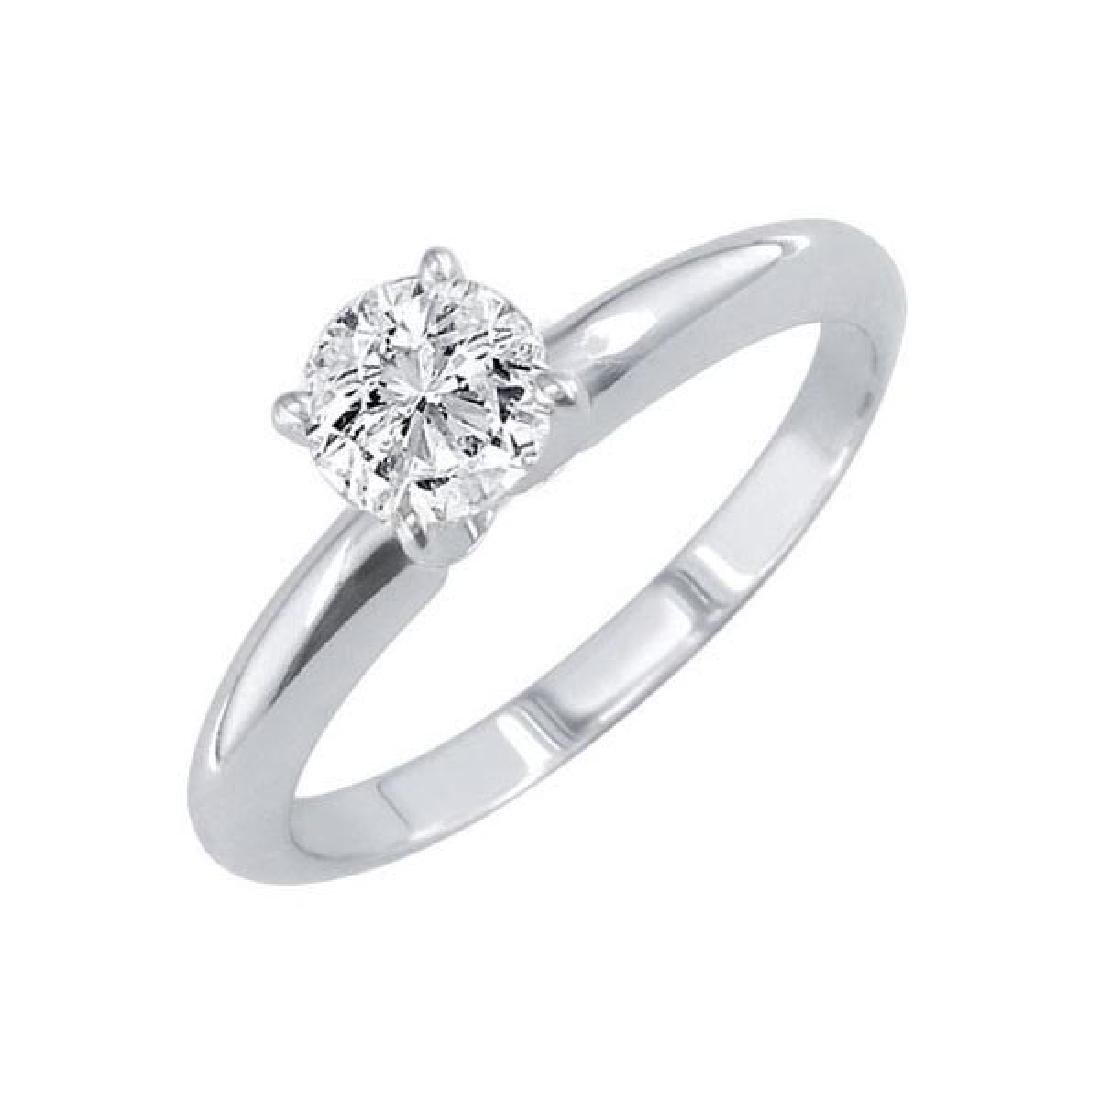 Certified 1.01 CTW Round Diamond Solitaire 14k Ring I/S